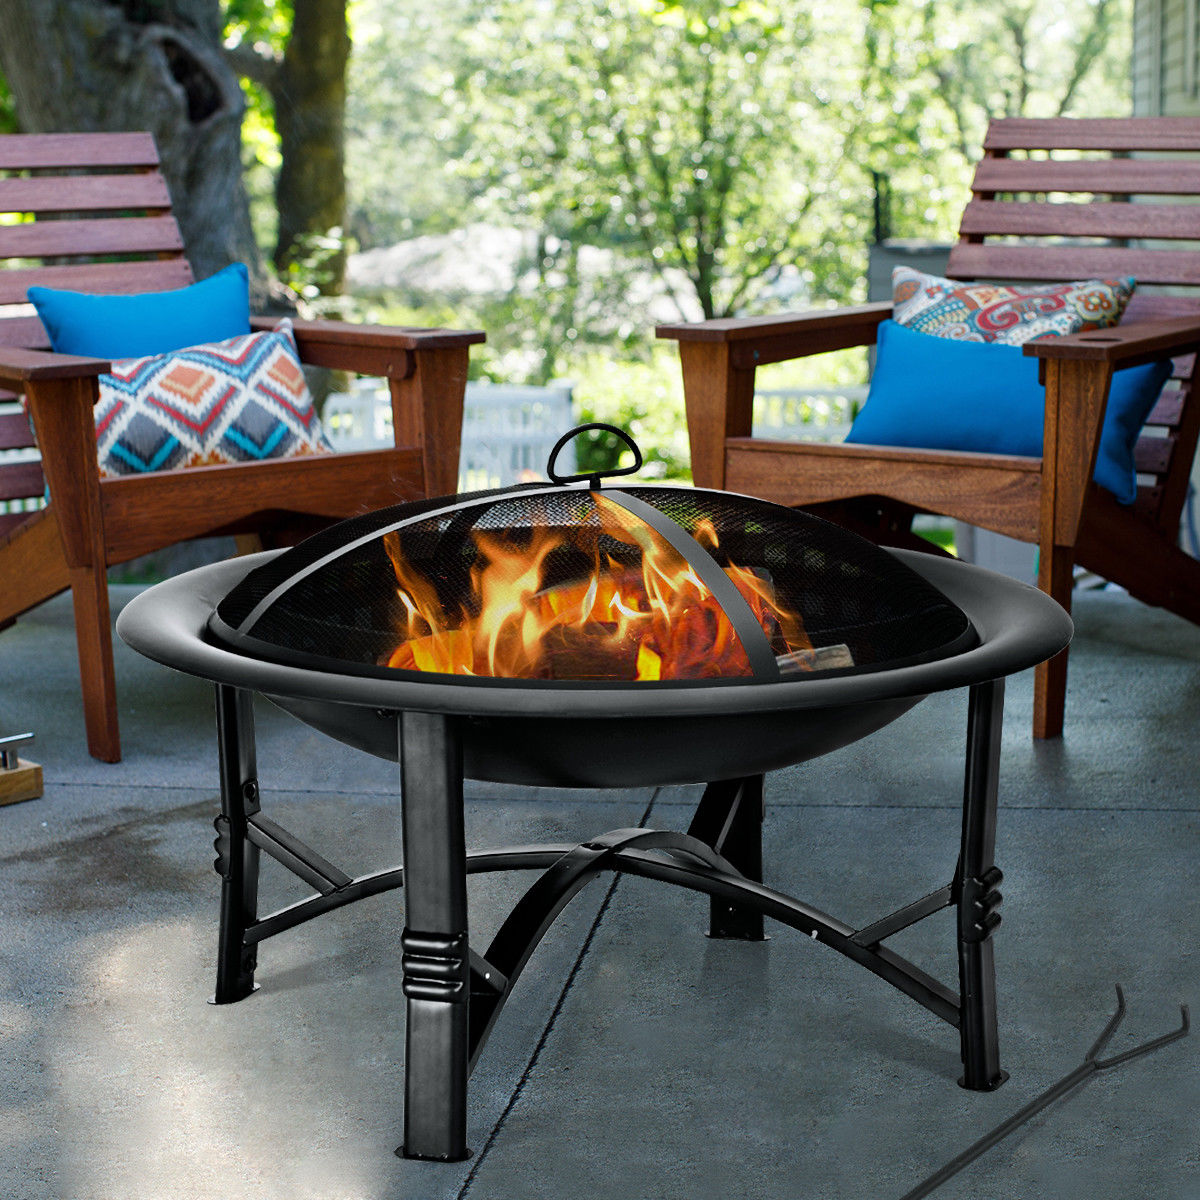 """30"""" Outdoor Fire Pit BBQ Portable Camping Firepit Heater Patio Garden Grill - image 2 of 10"""